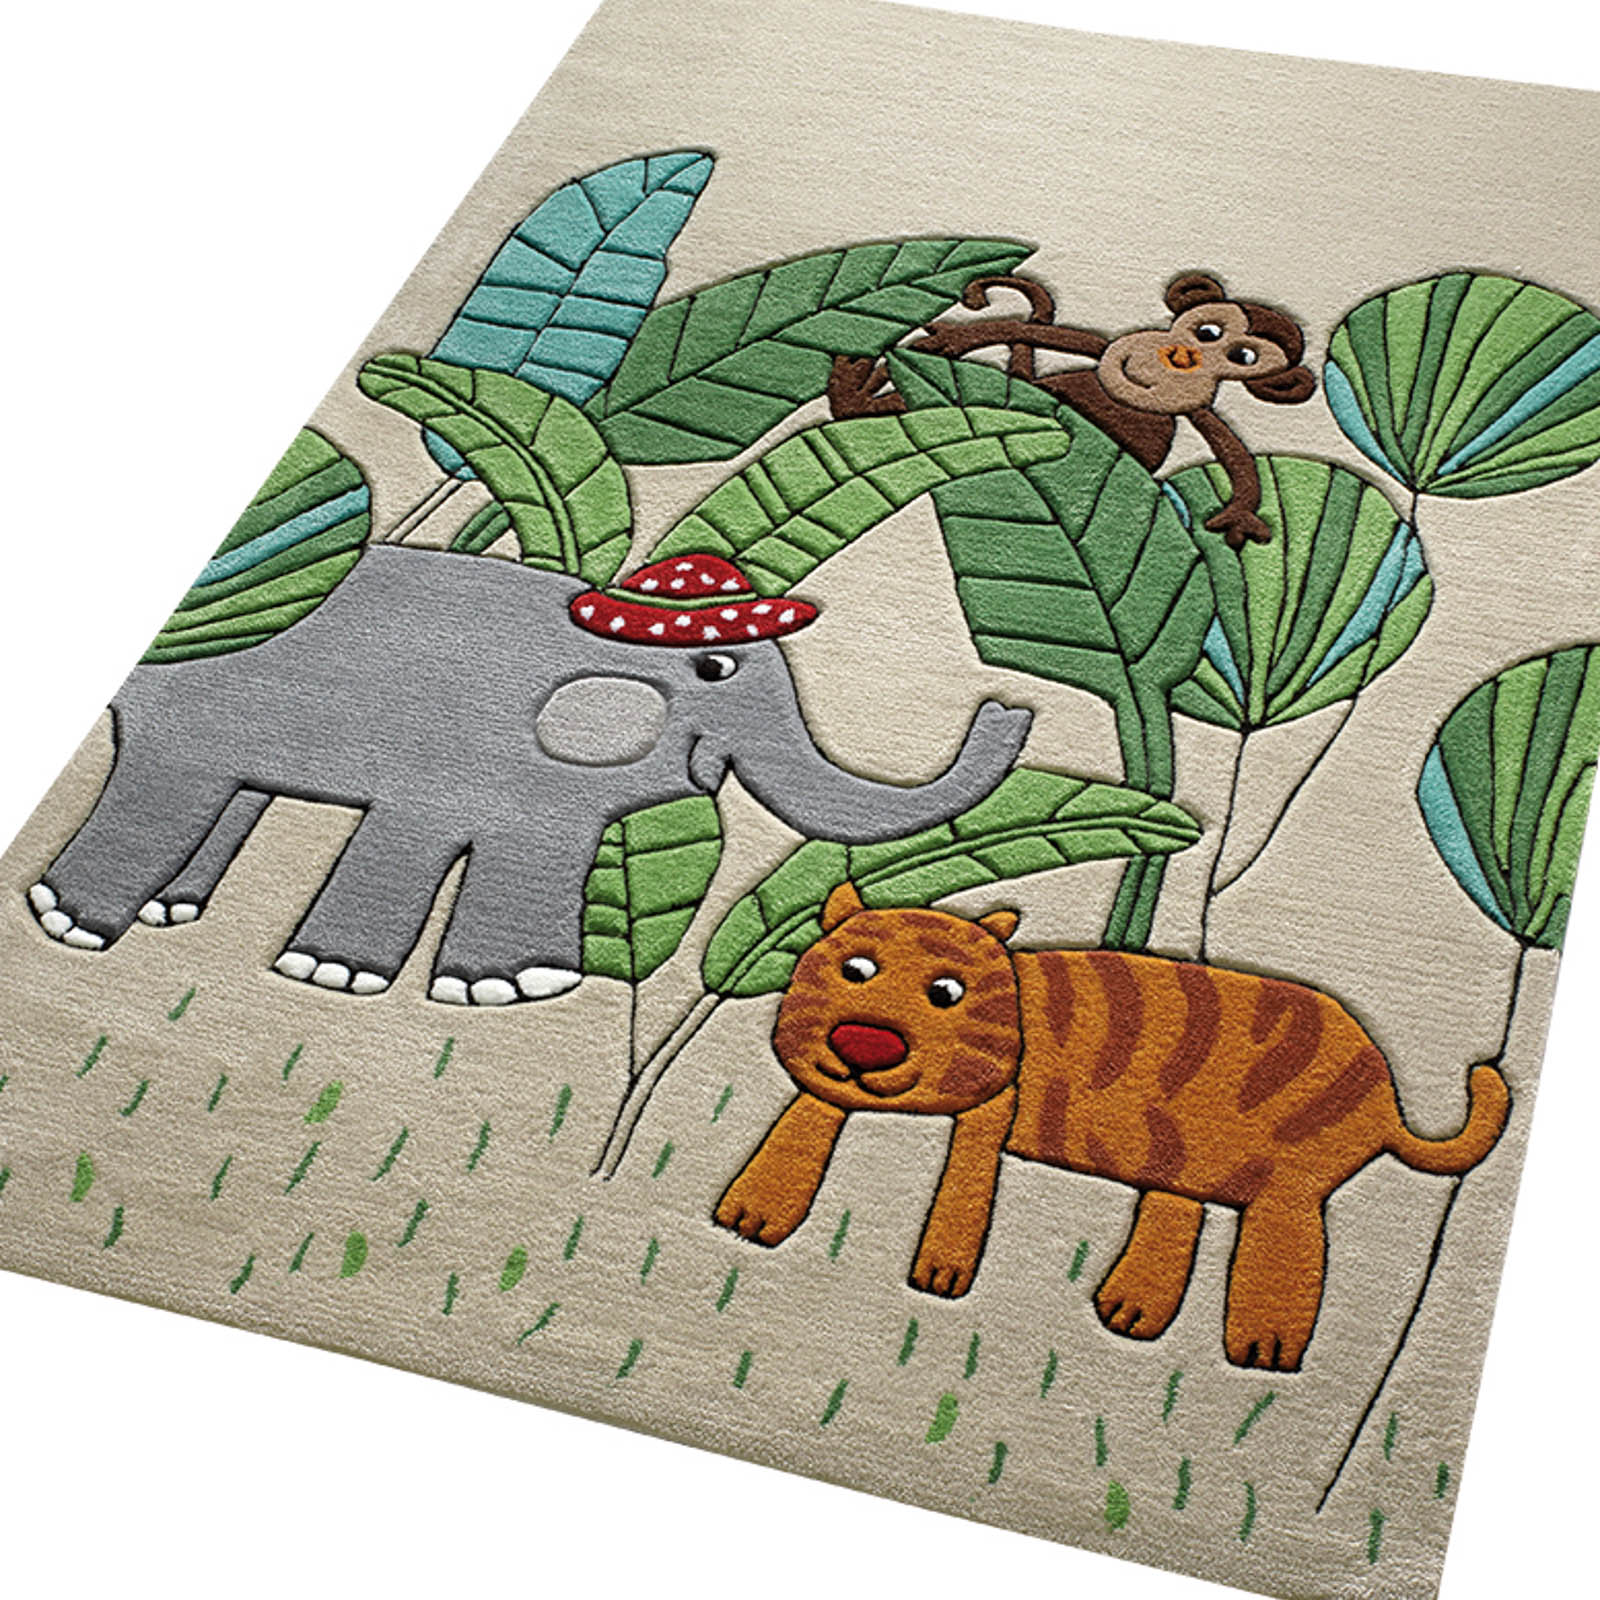 Jungle Friends Rug Home Decor